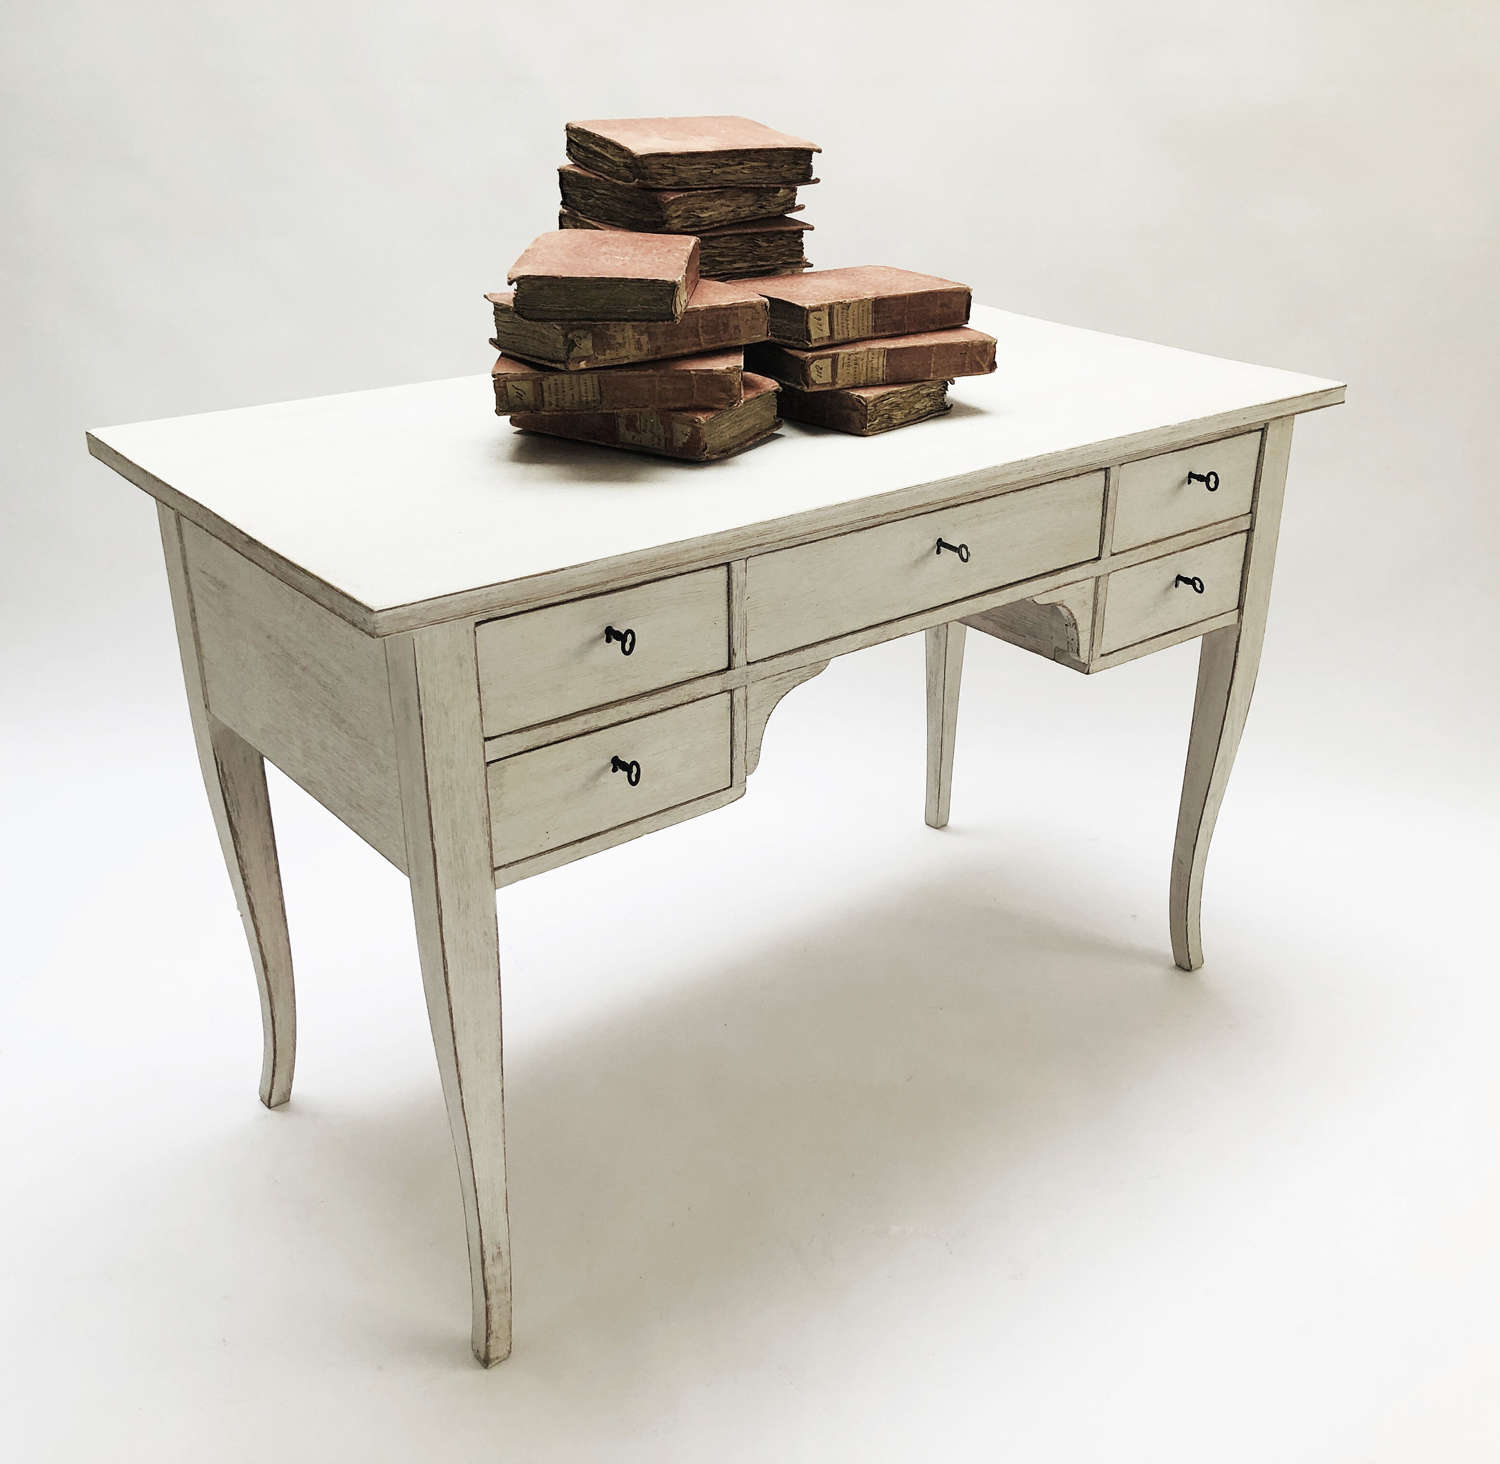 Swedish Desk with 5 drawers and limewash finish circa 1950